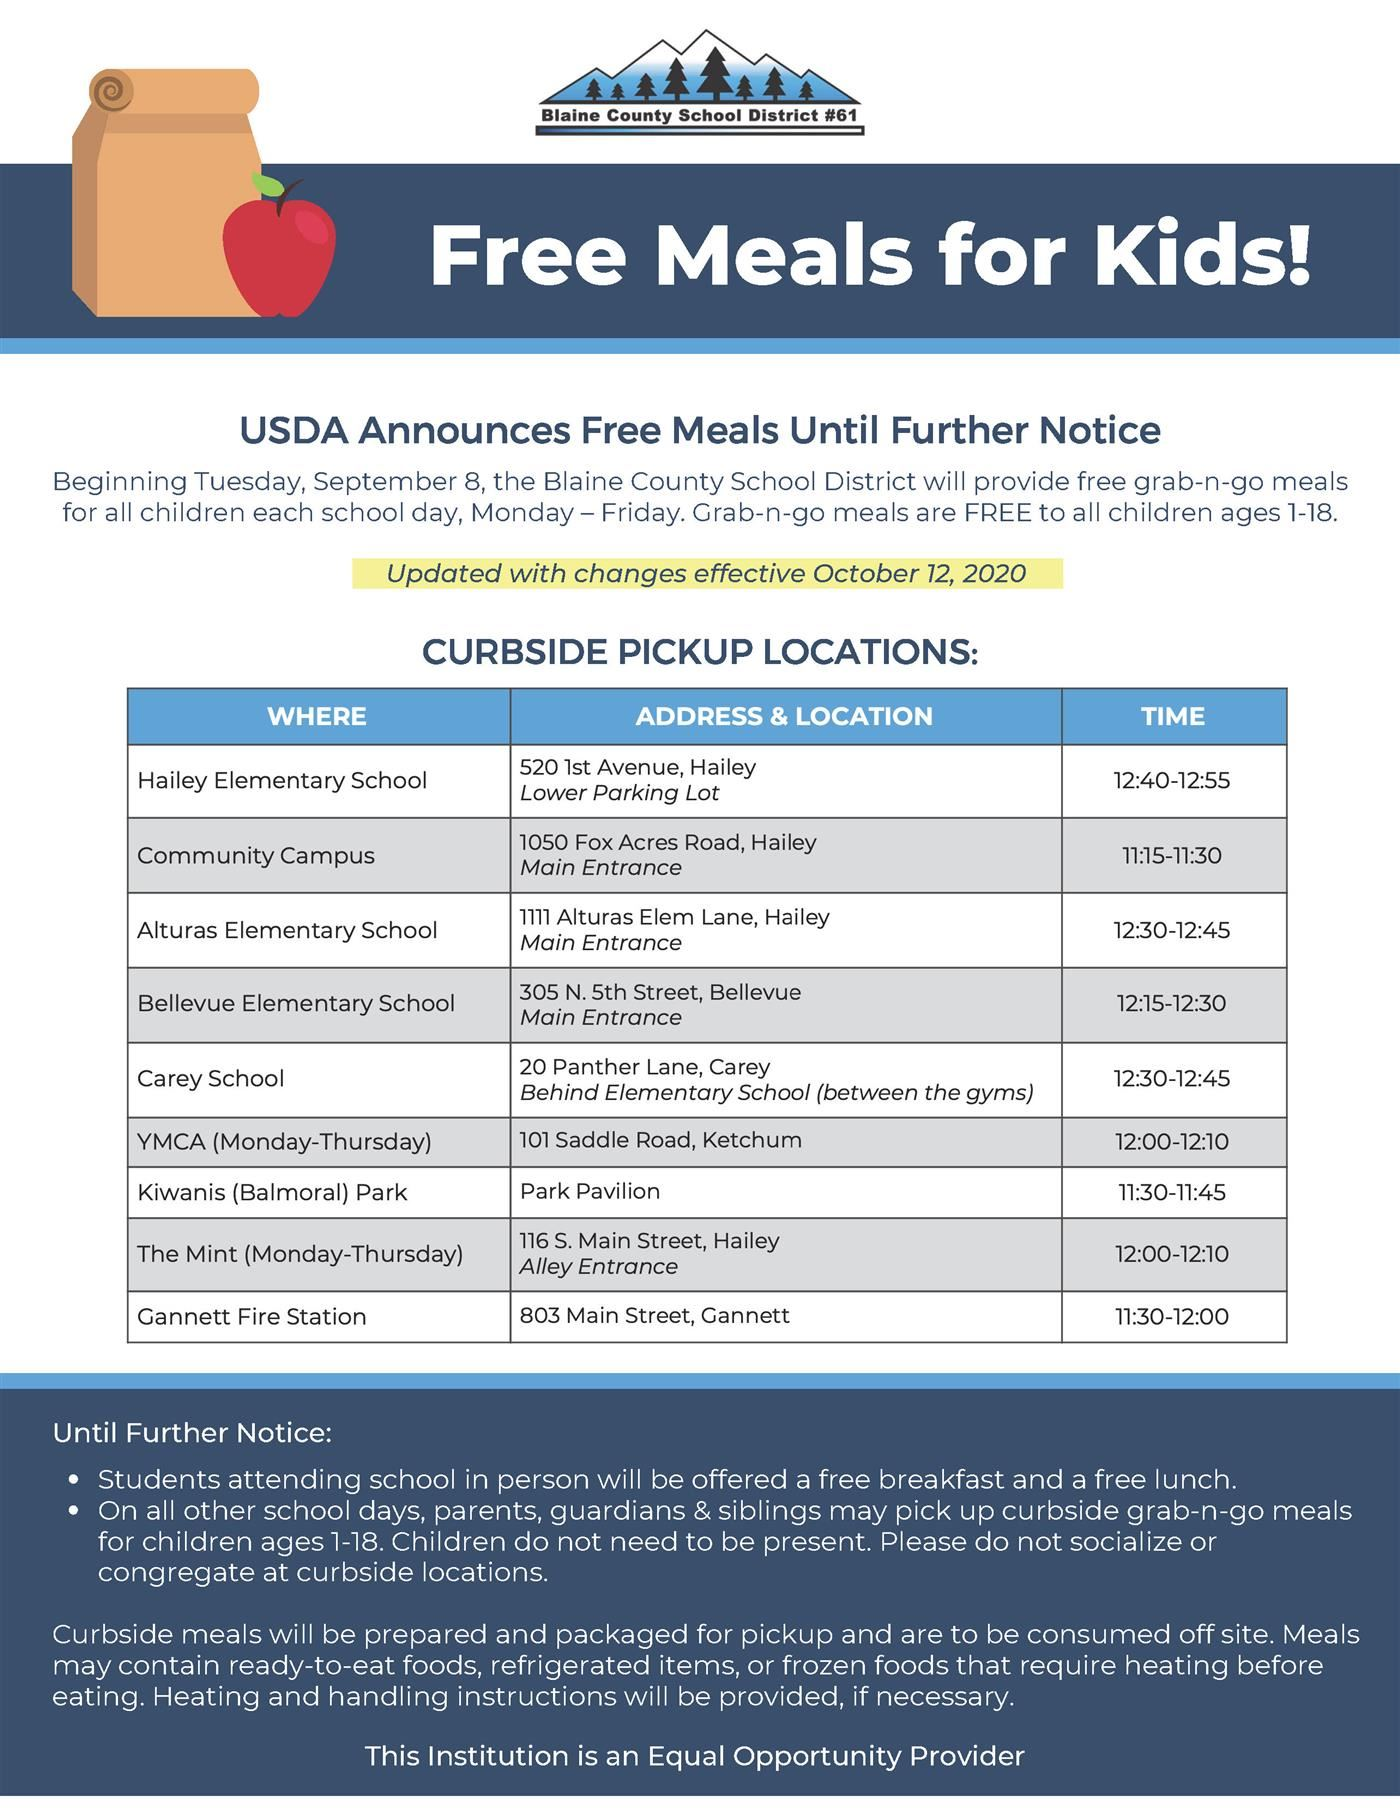 New times for free curbside lunch pickup